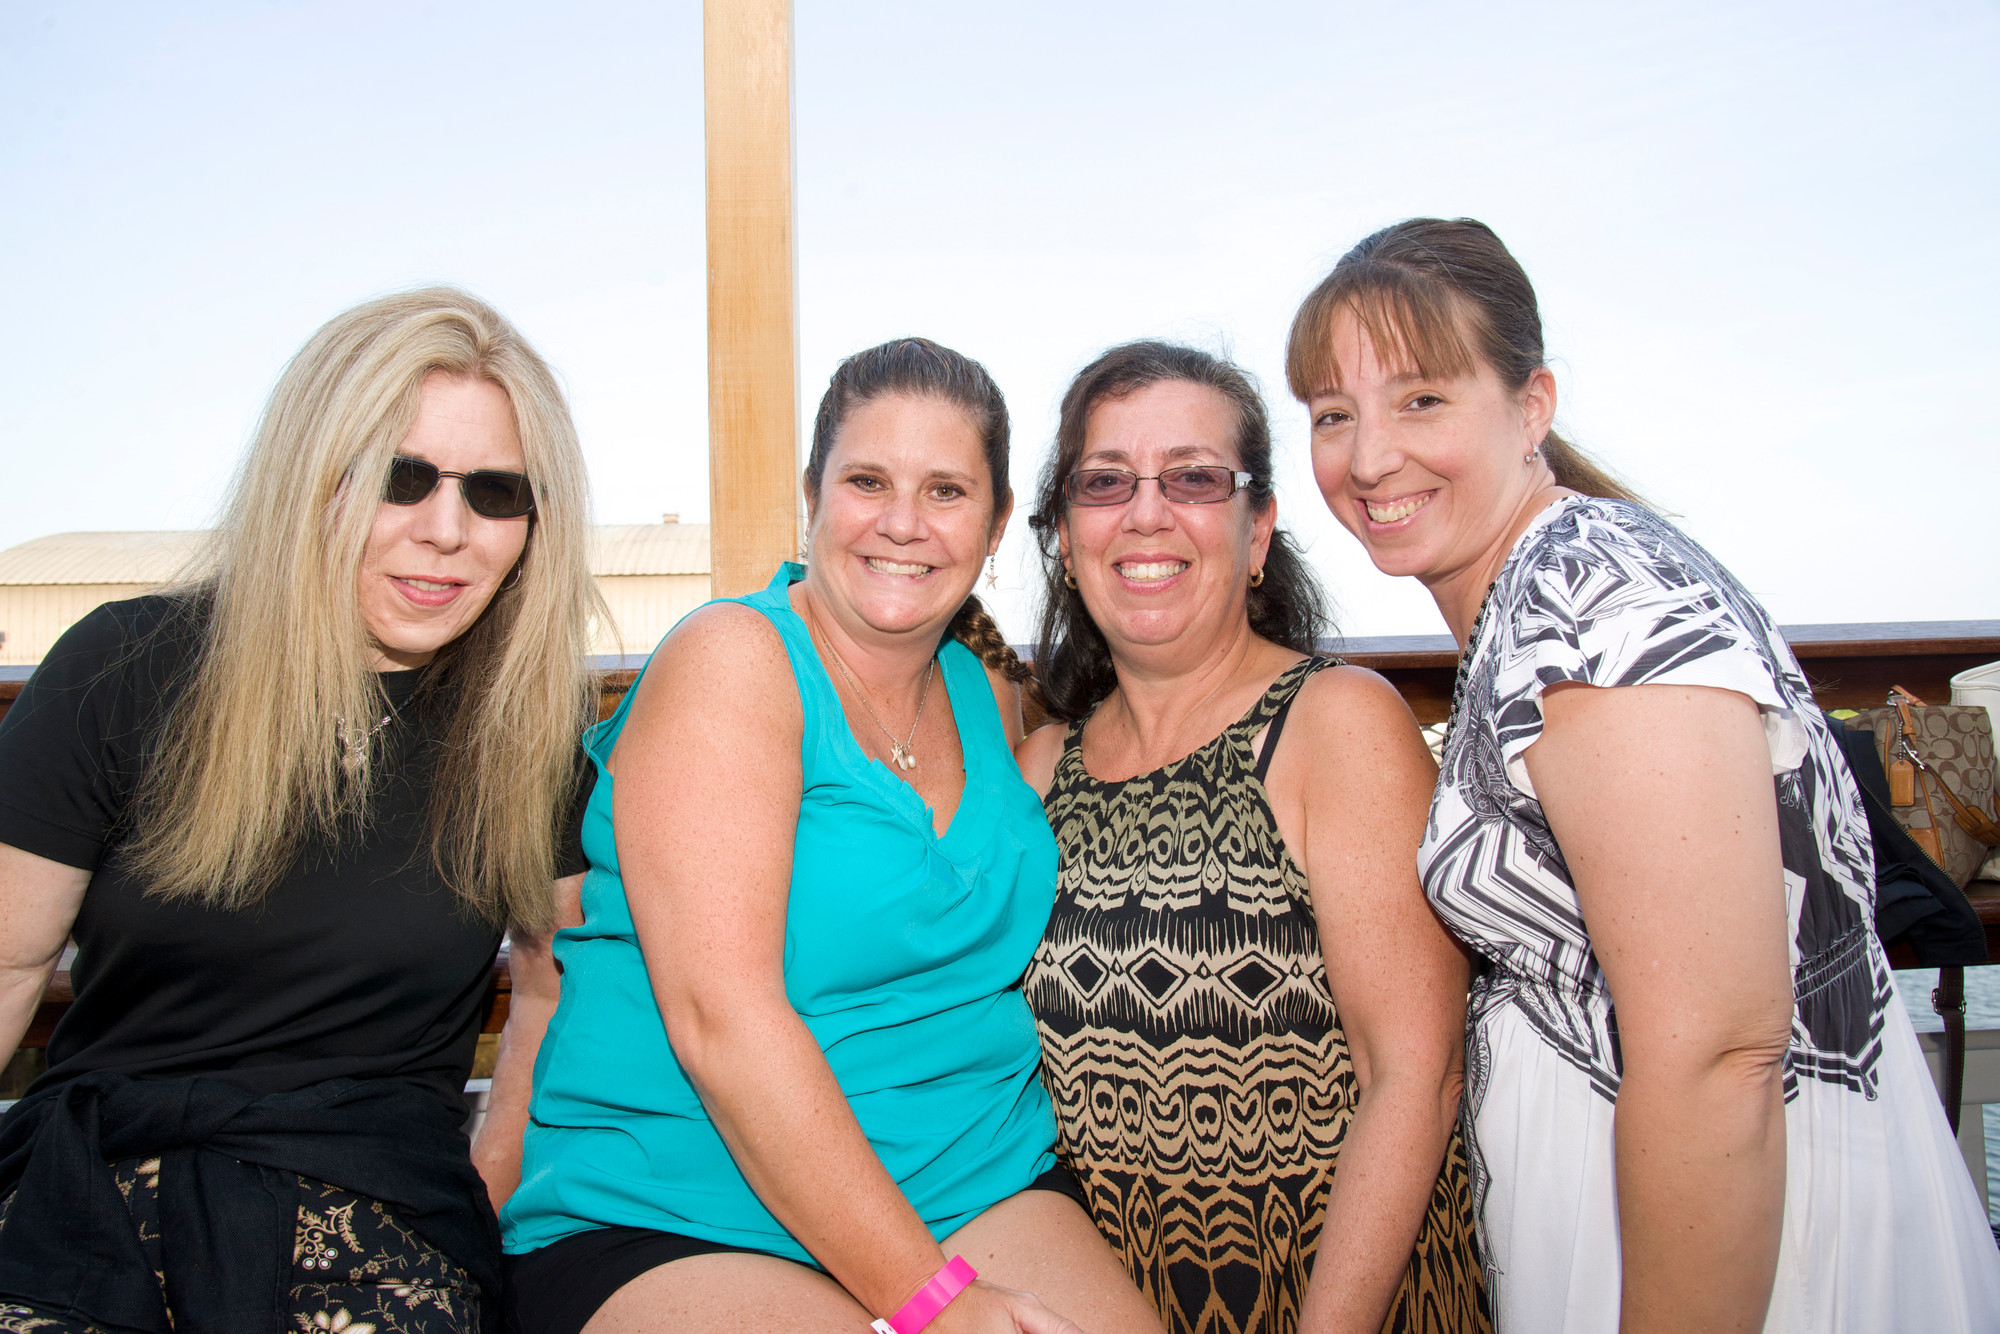 Trish Daly Louw, Camille Murphy, Christine Jaskowiak and Connie Cicero at the fundraiser.